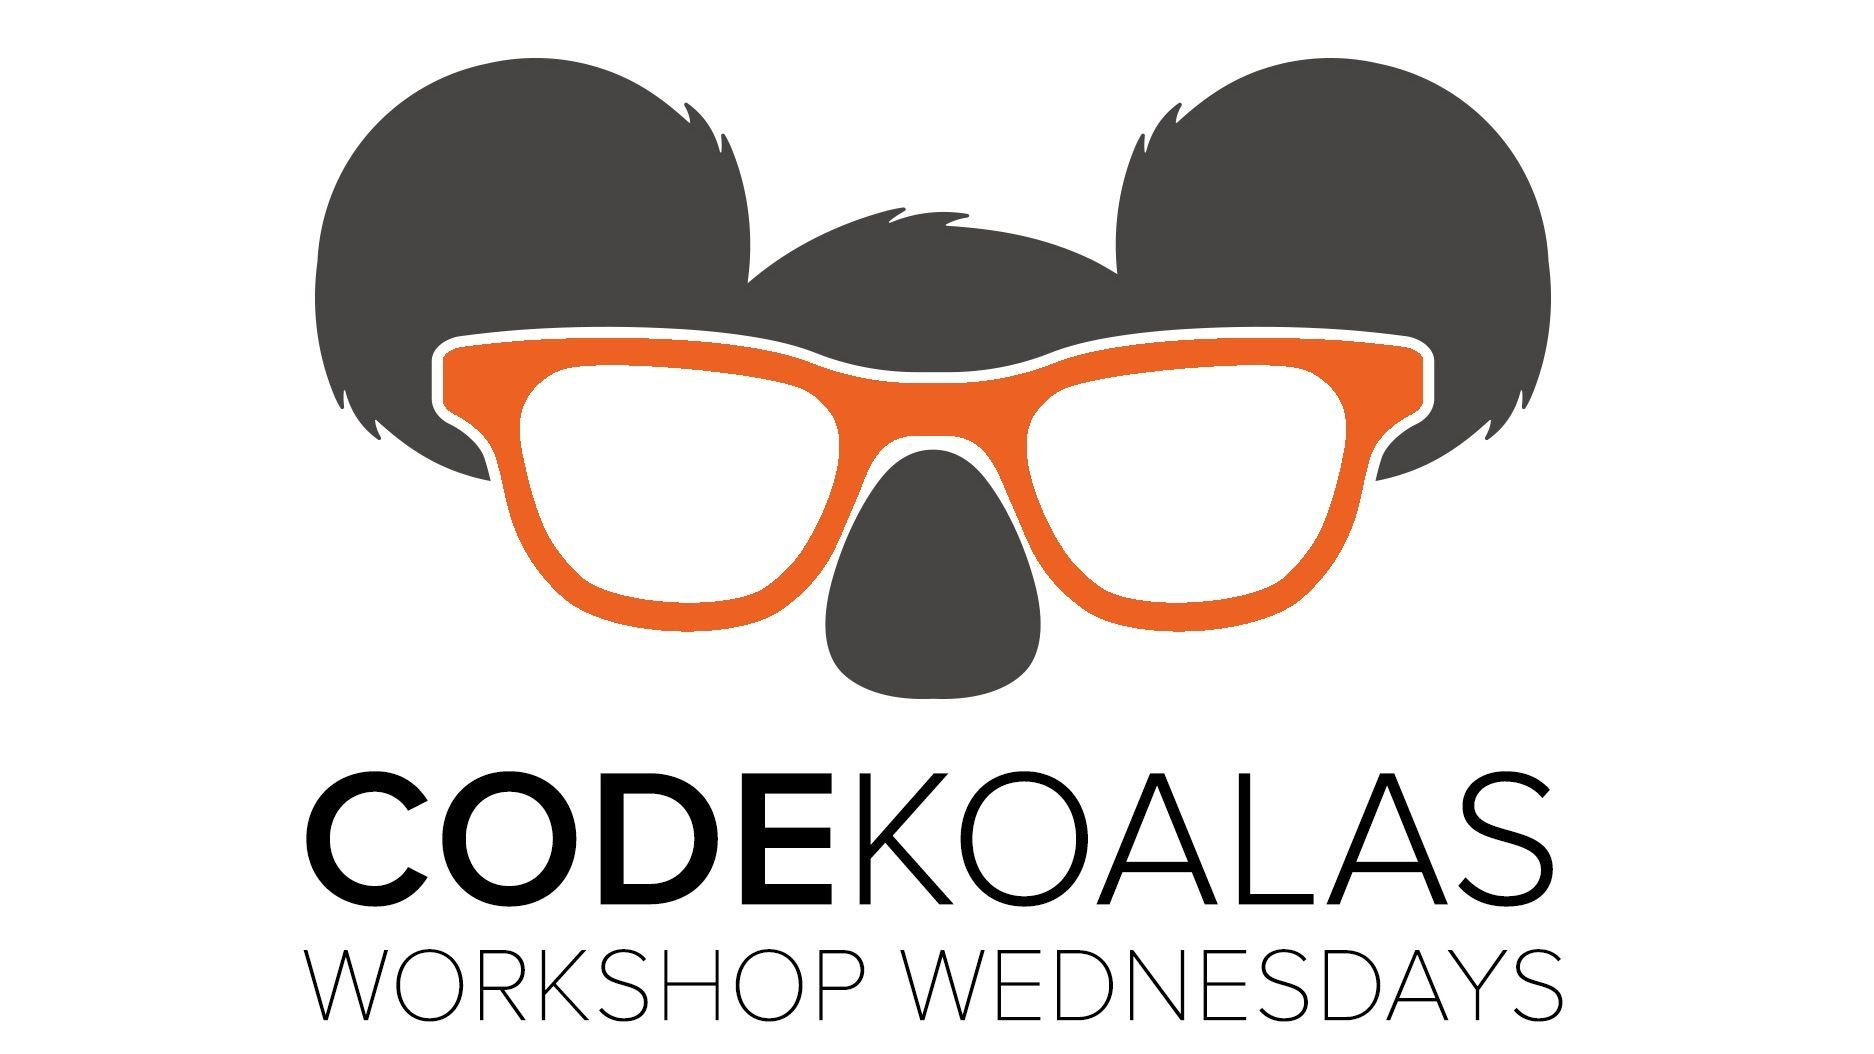 Code Koalas Workshop Wednesday